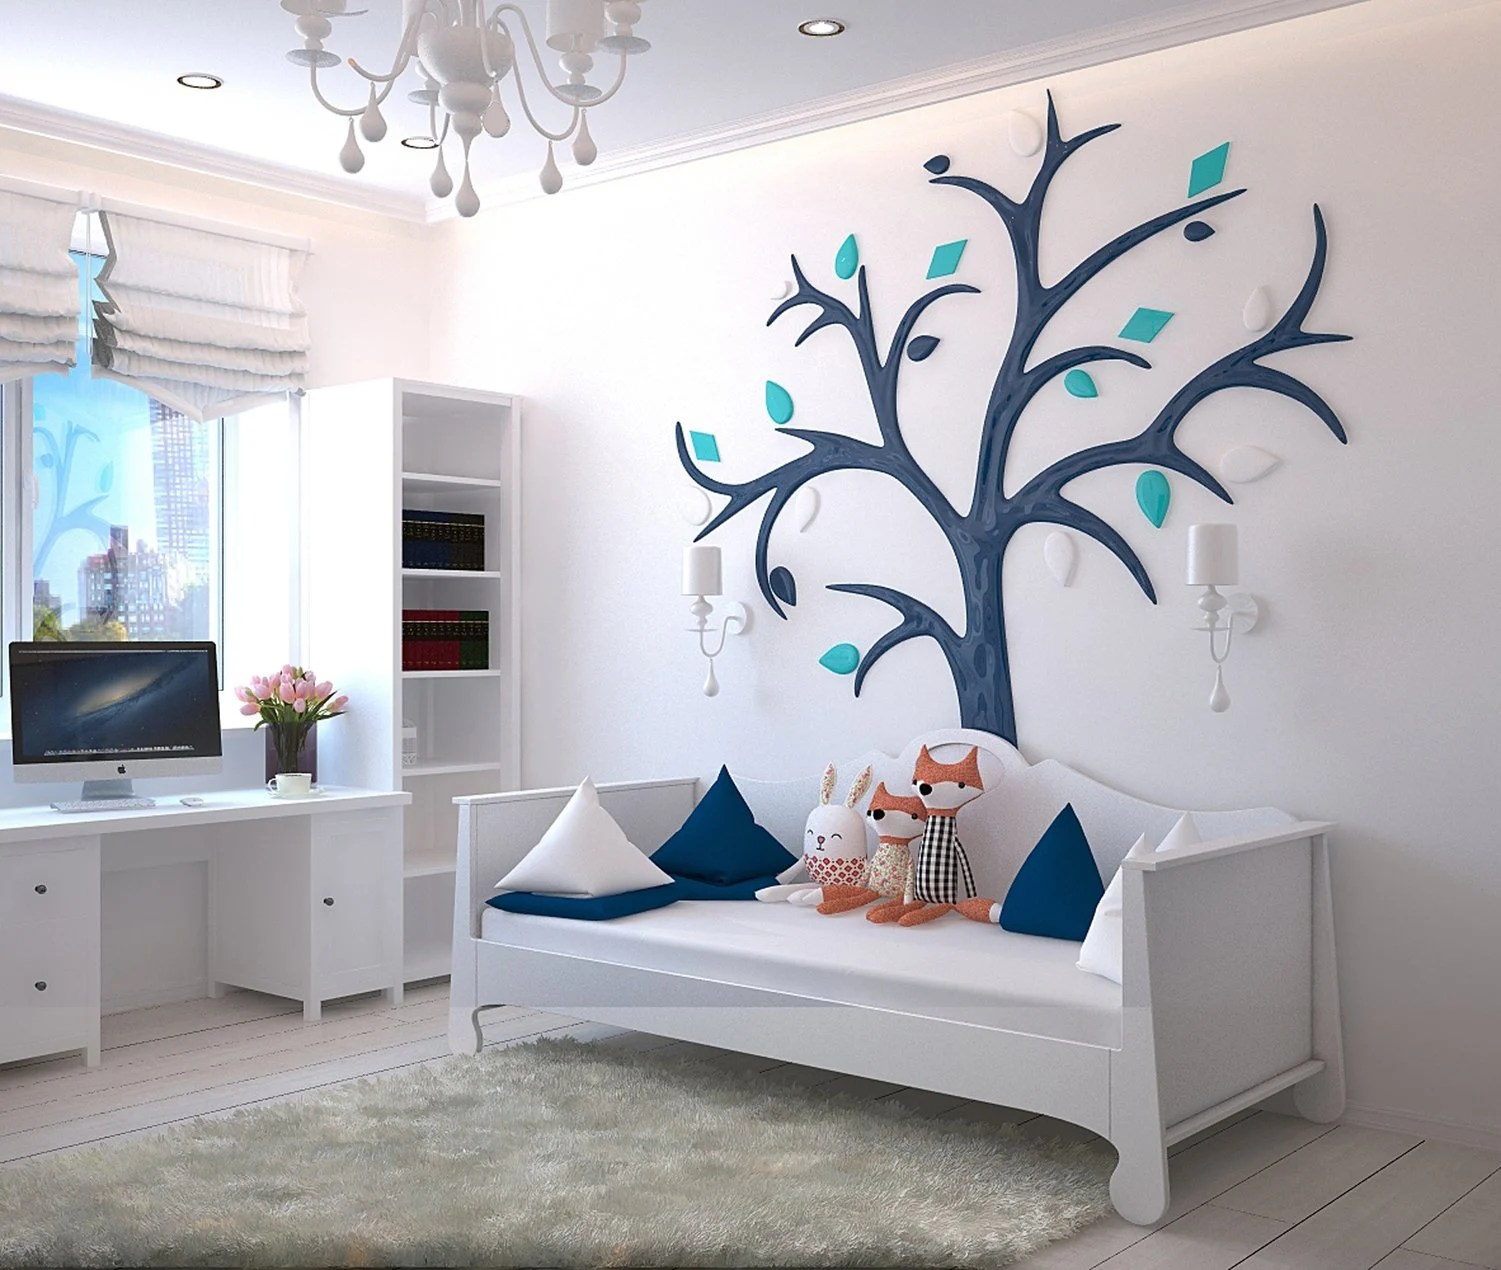 8 Must See Kids Bedroom Design Ideas That Create Lasting Memories